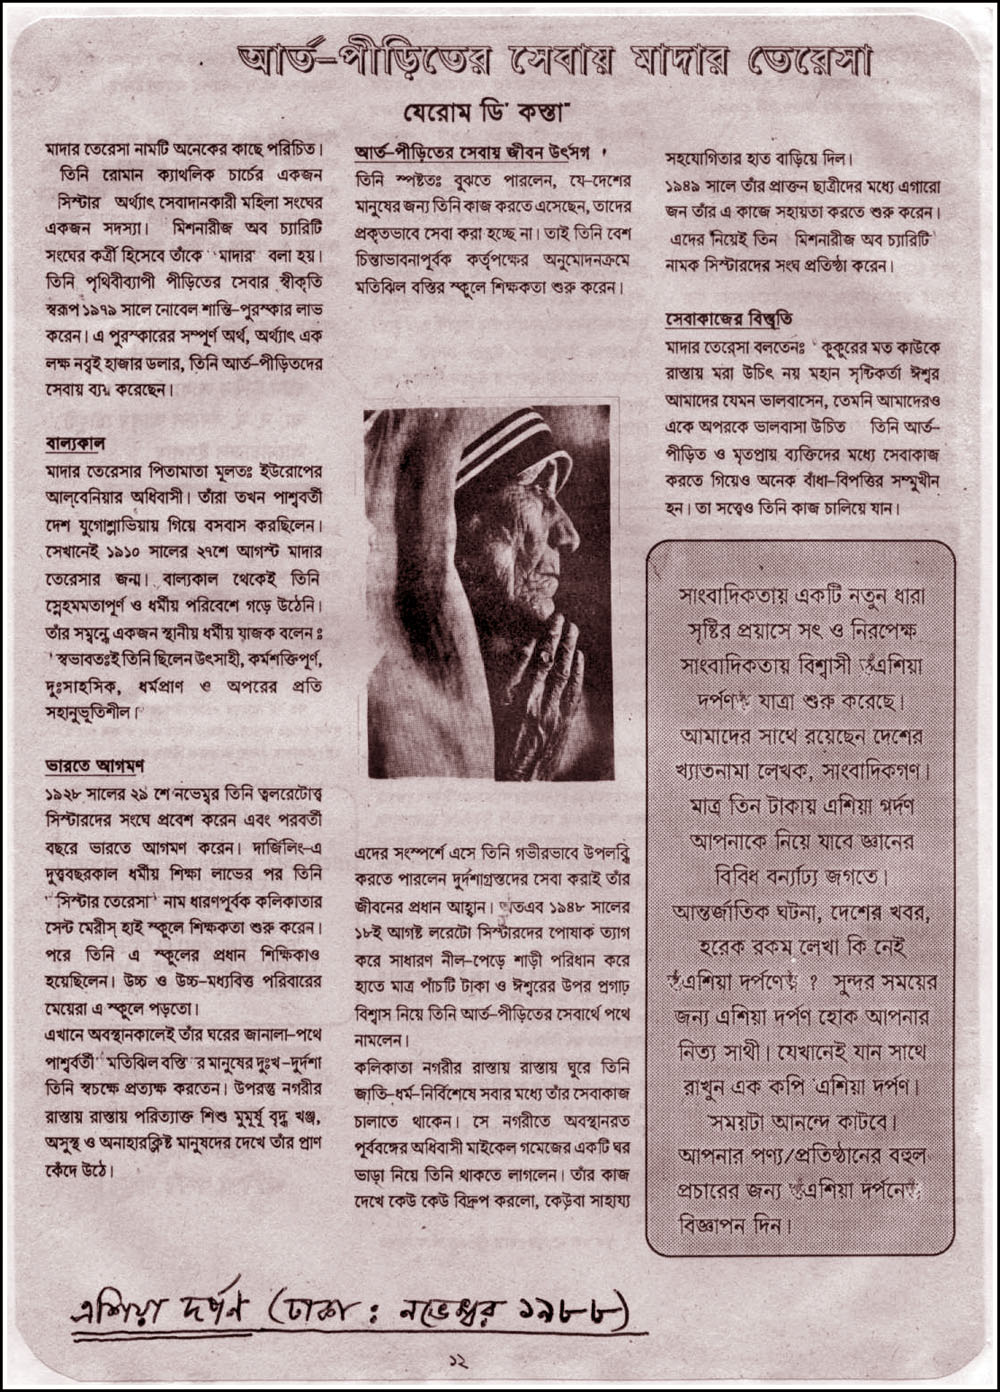 essay writing about mother teresa Mother teresa has dedicated her life to helping the poor, the sick, and the dying around the world she is one of the most well known and respected people of the 20th century.